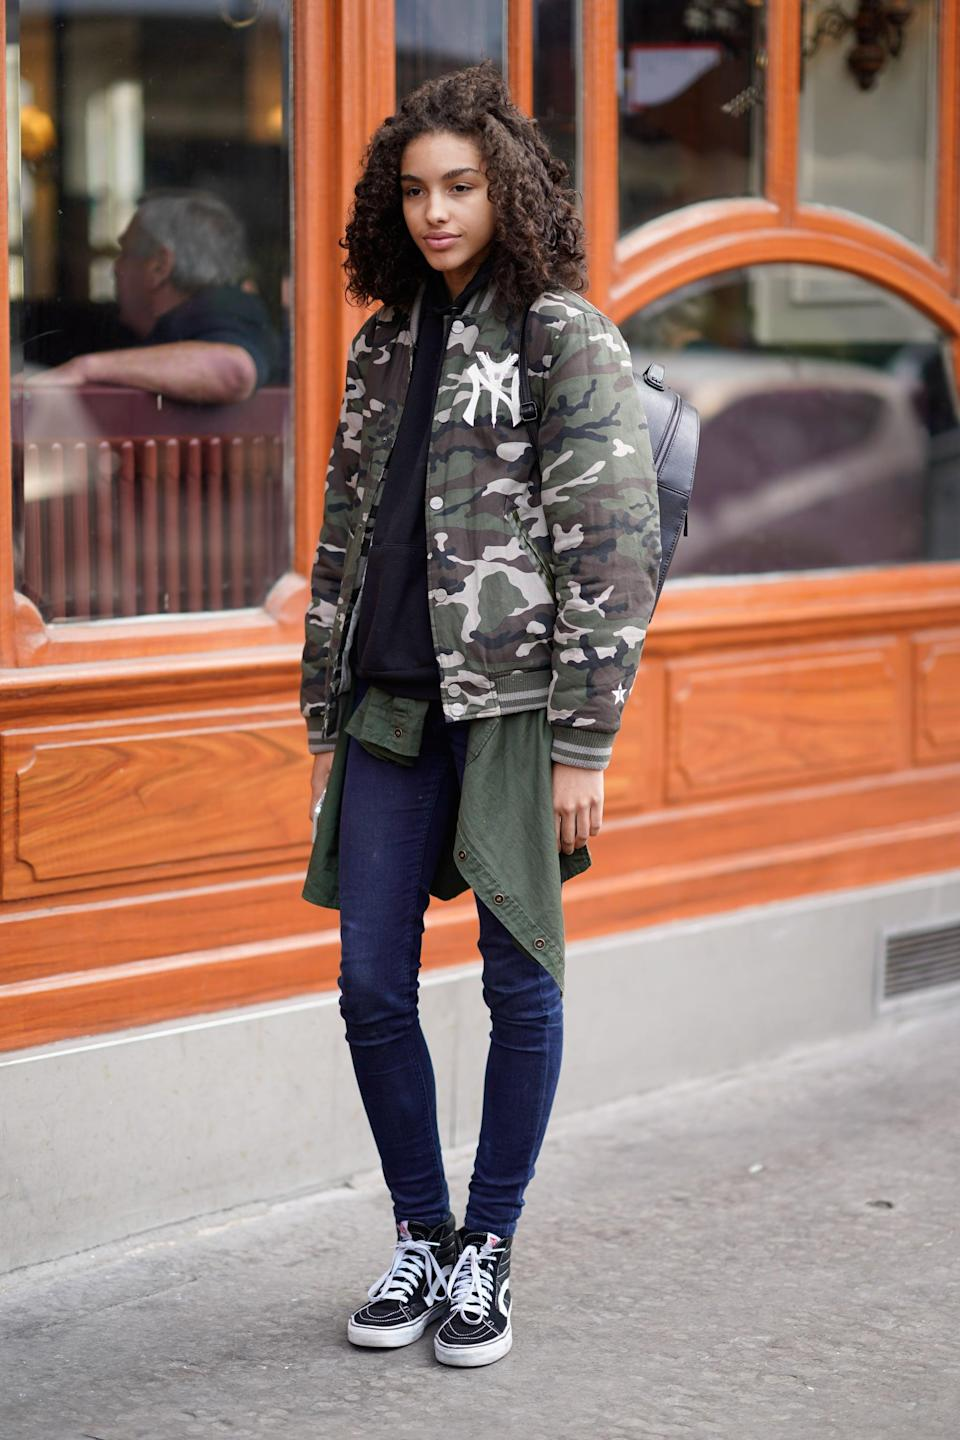 <p>With comfort and simplicity steering many sartorial decisions, wearing the jacket with dark wash denim and Vans is such a simple way to own the look.</p>